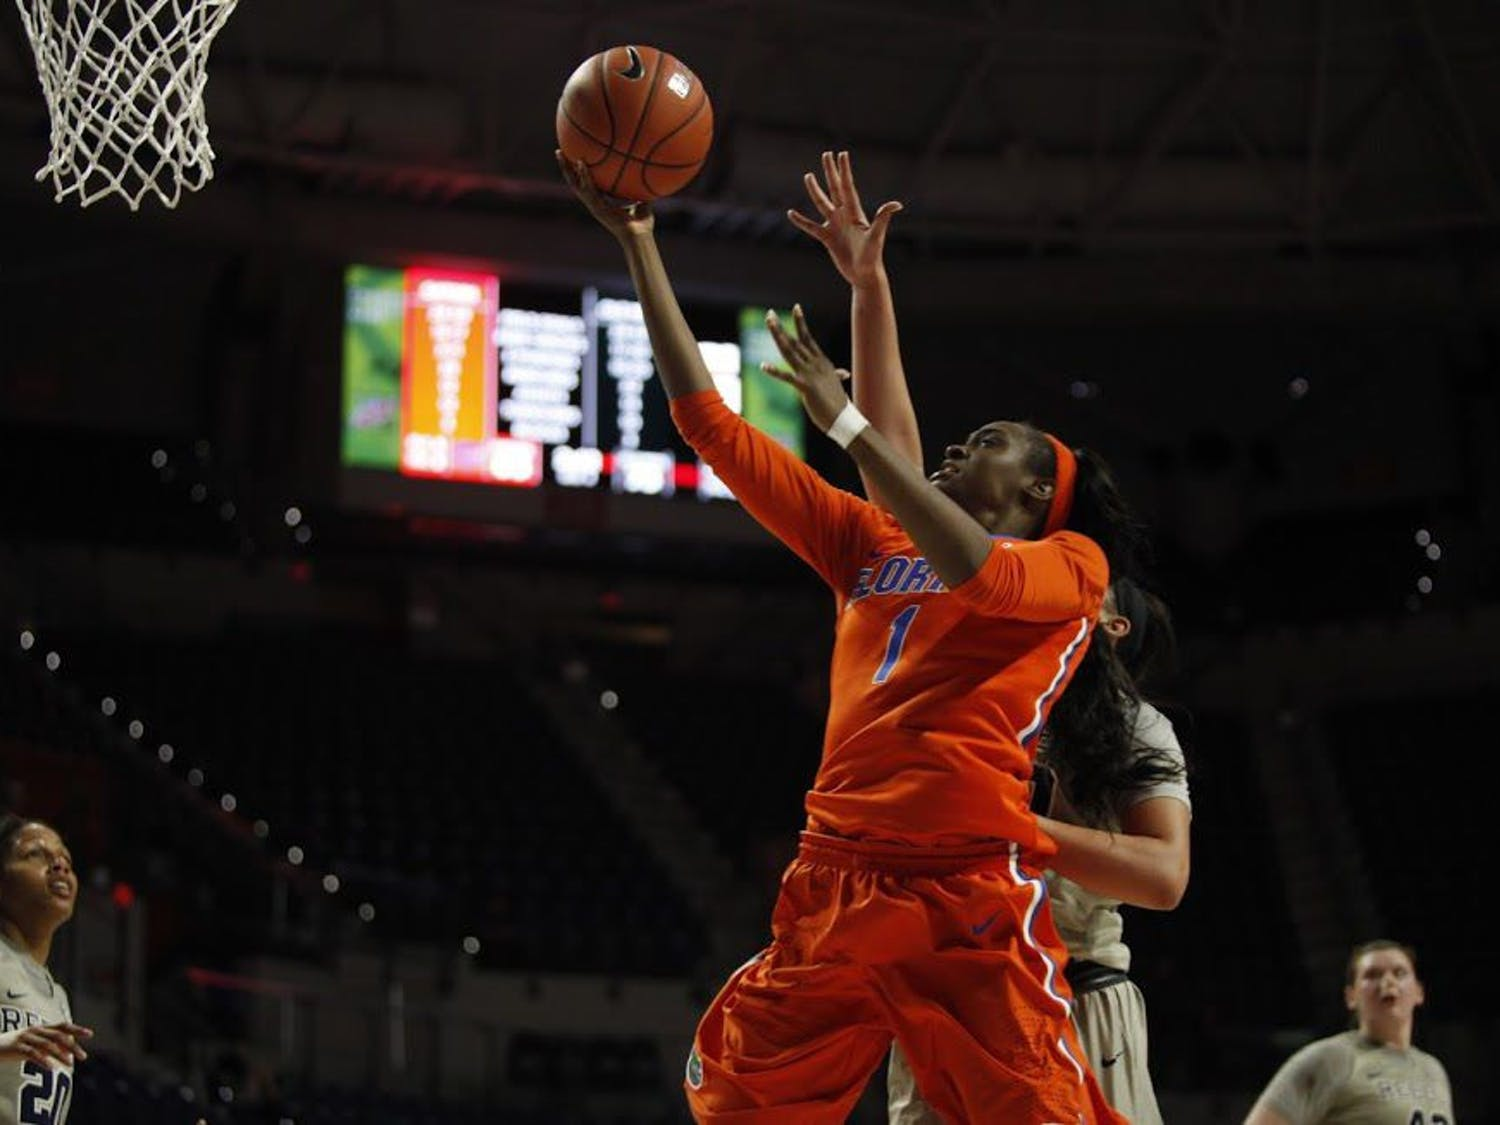 UF forward Ronni Williams attempts a layup during Florida's 84-75 loss to Ole Miss on Feb. 6, 2017, in the O'Connell Center.